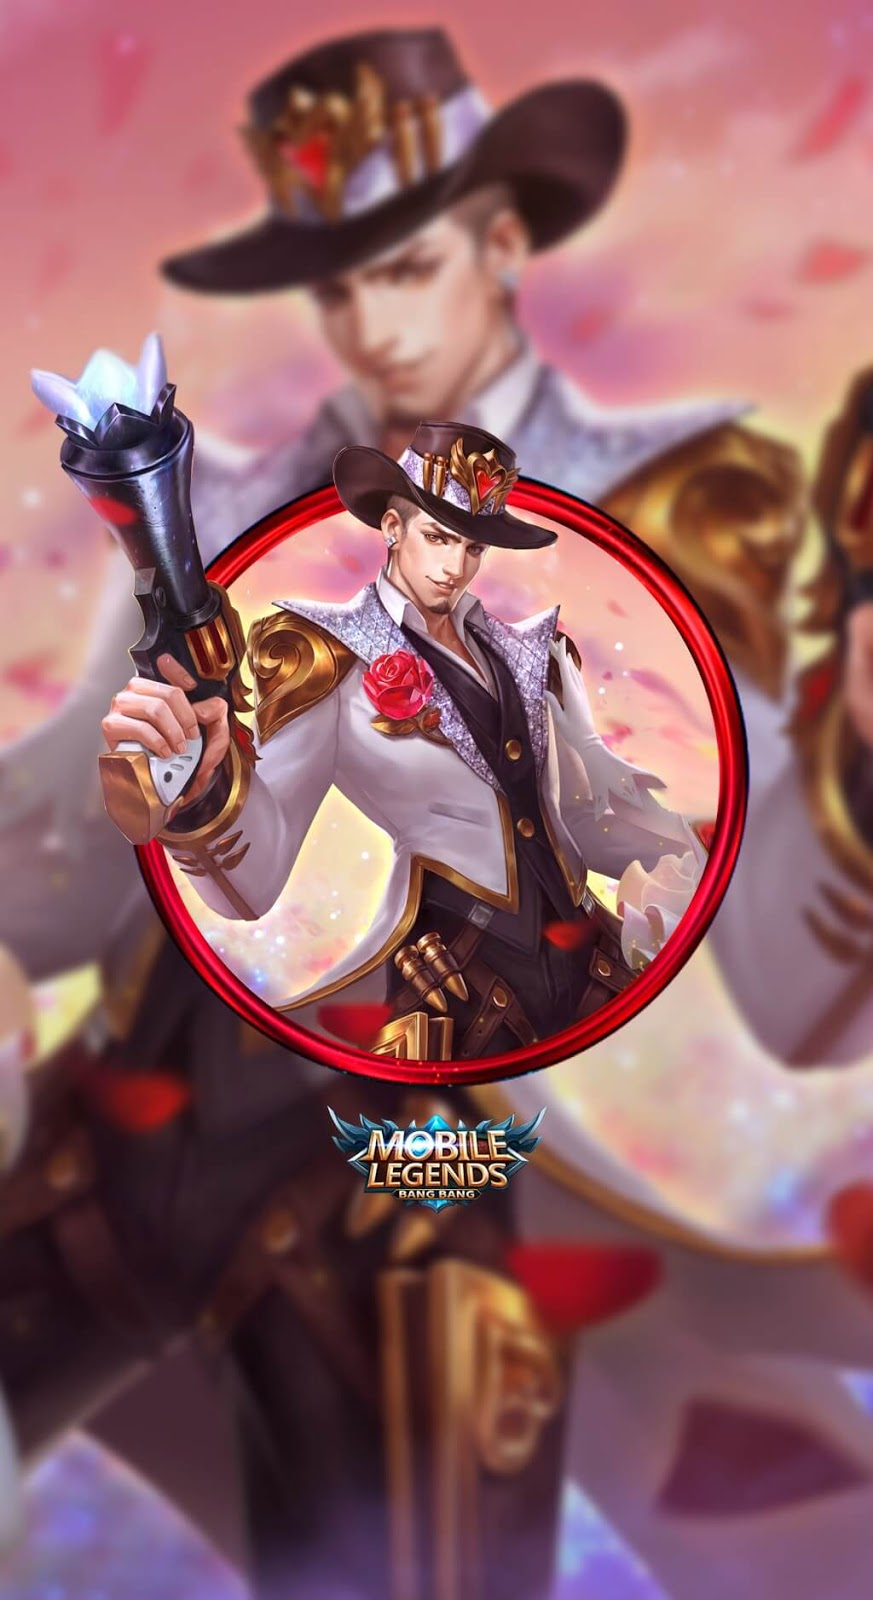 Wallpaper Clint Gun and Roses Skin Mobile Legends HD for Mobile